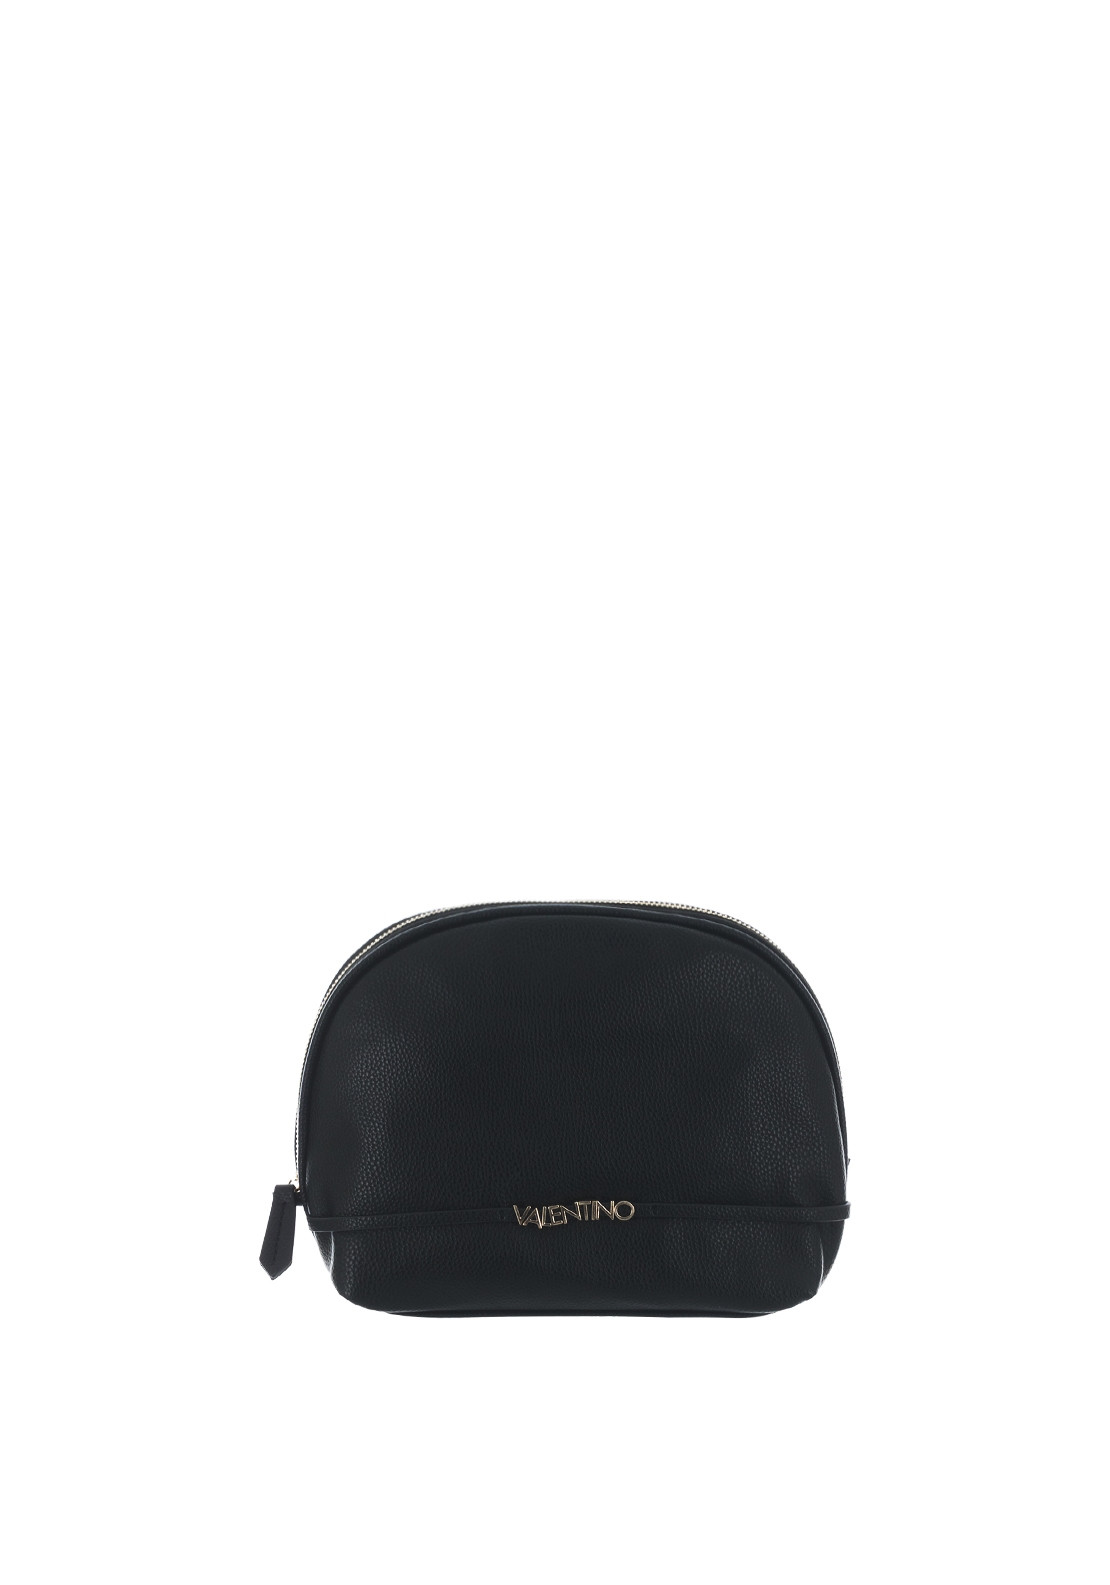 Valentino By Mario Note Cosmetic Bag, Black